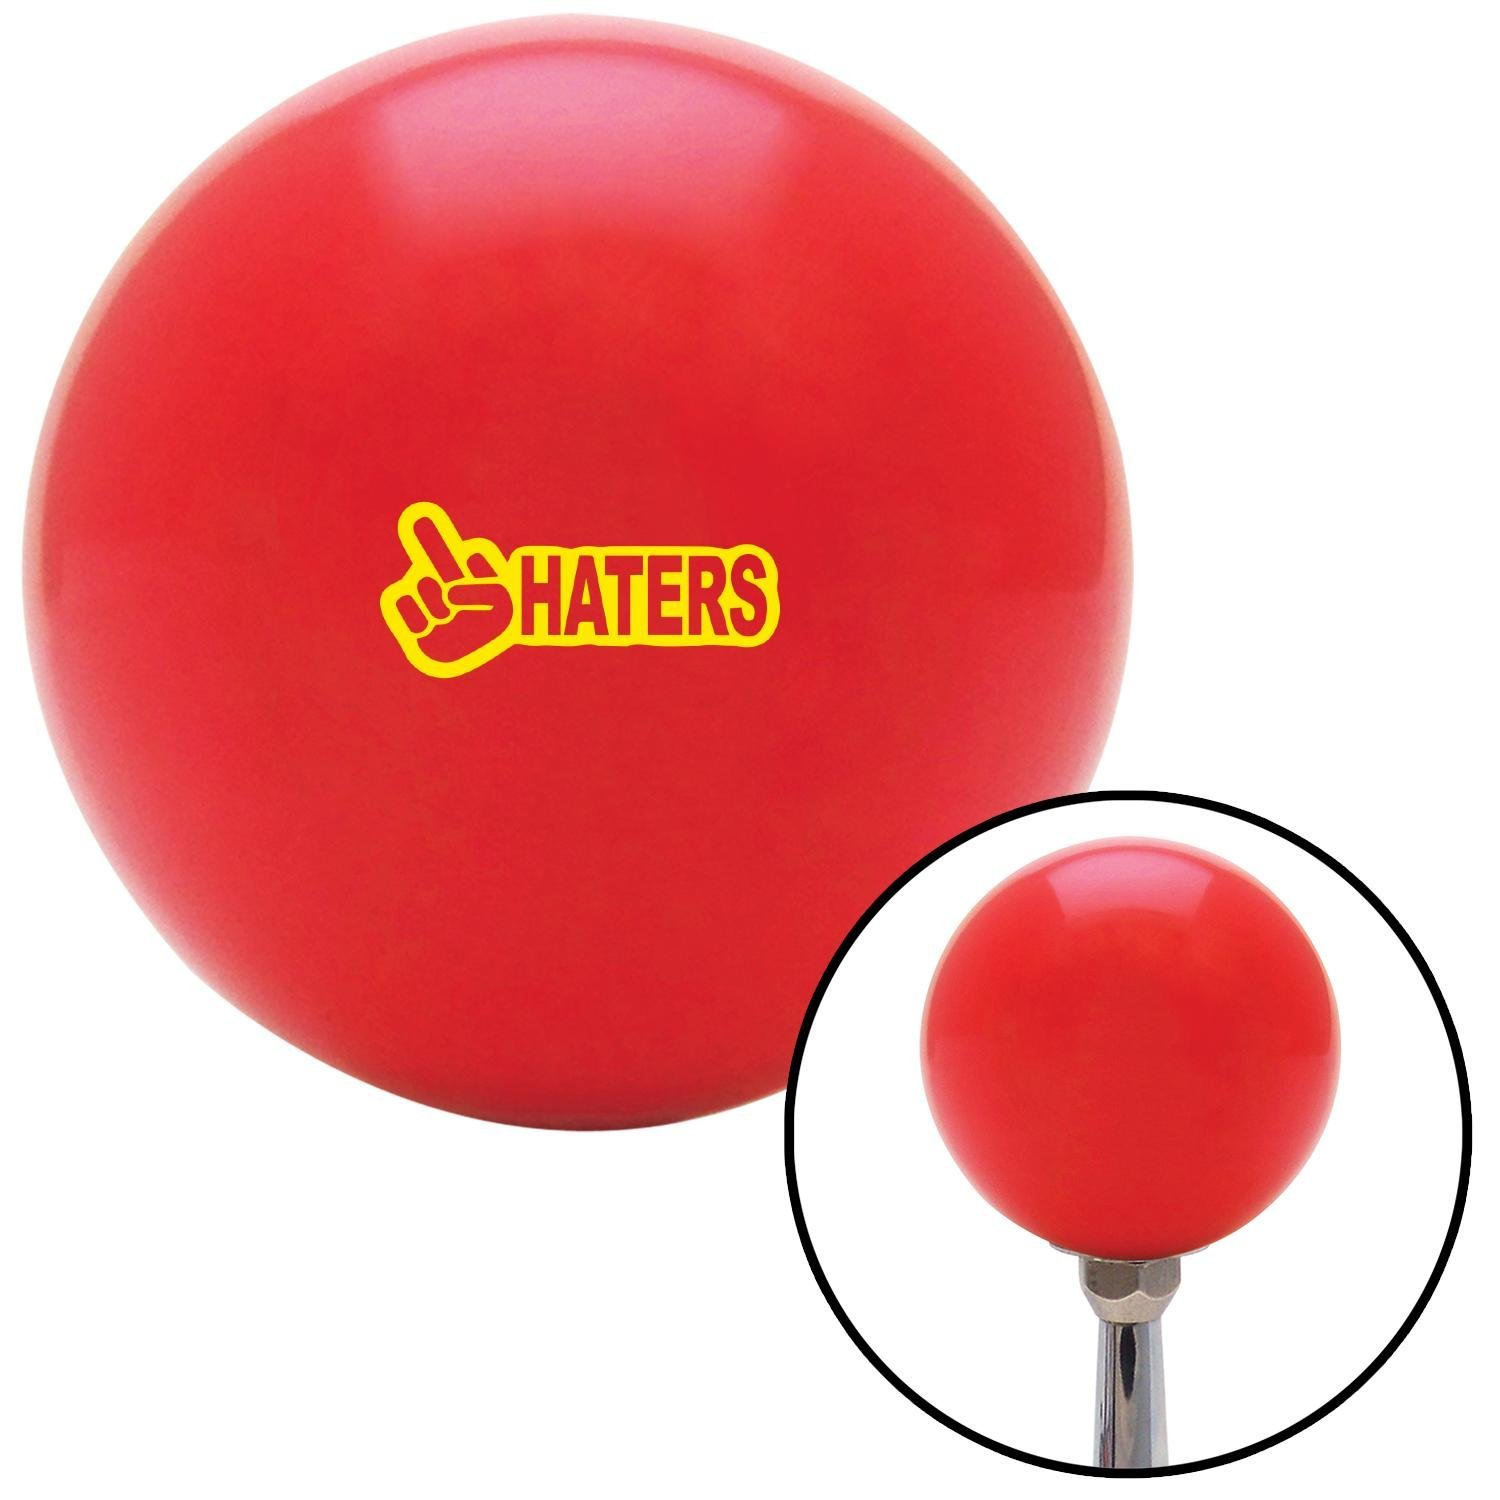 American Shifter 272126 Shift Knob ASCSNX1593158 Yellow Haters Red with M16 x 1.5 Insert